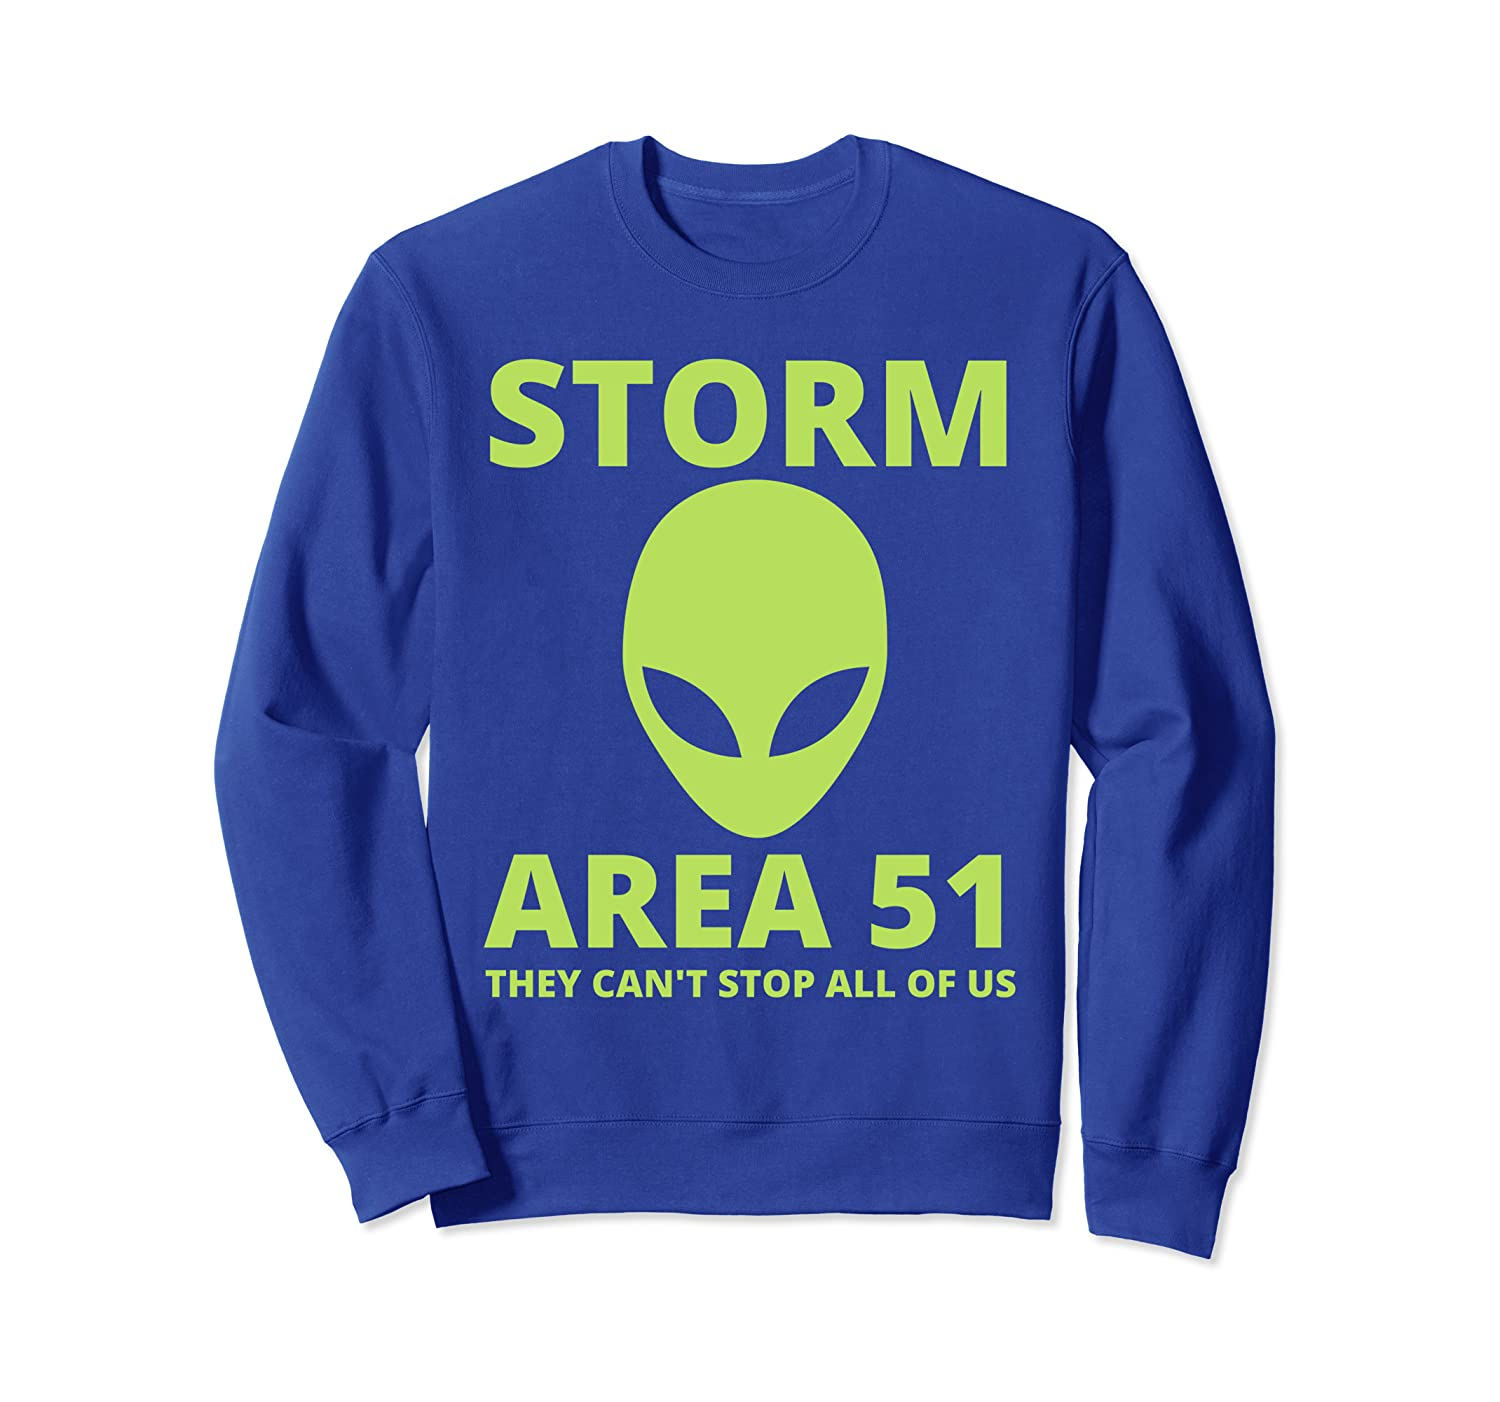 Area 51 Shirt Men Women Girls Boys They Cant Stop All Of Us Sweatshirt-TH